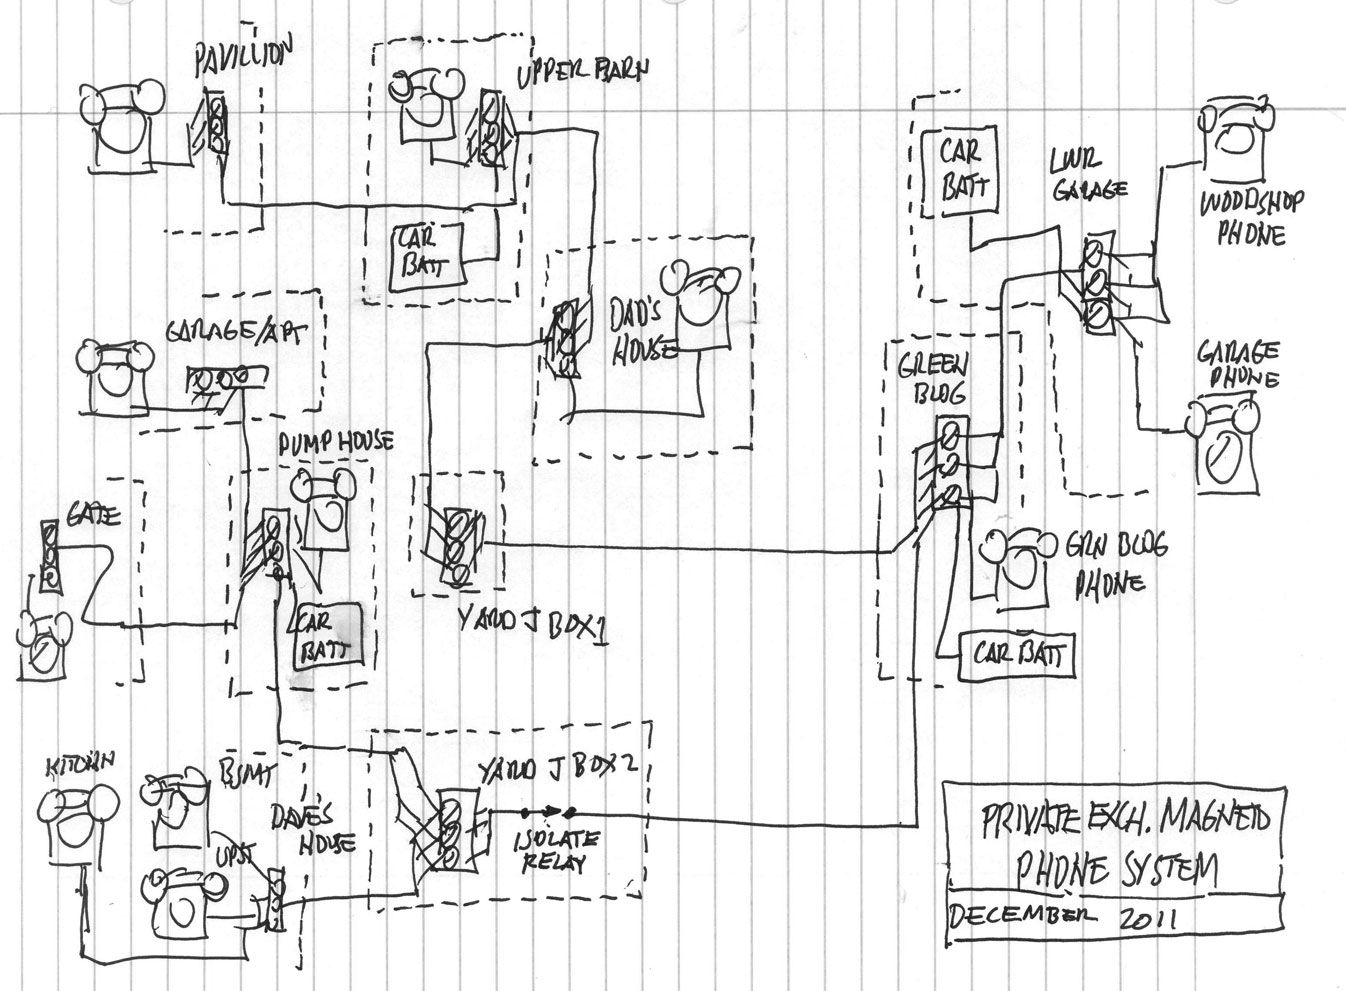 hight resolution of phone system wiring diagram wiring diagram source home telephone wiring schematic phone entry system wiring